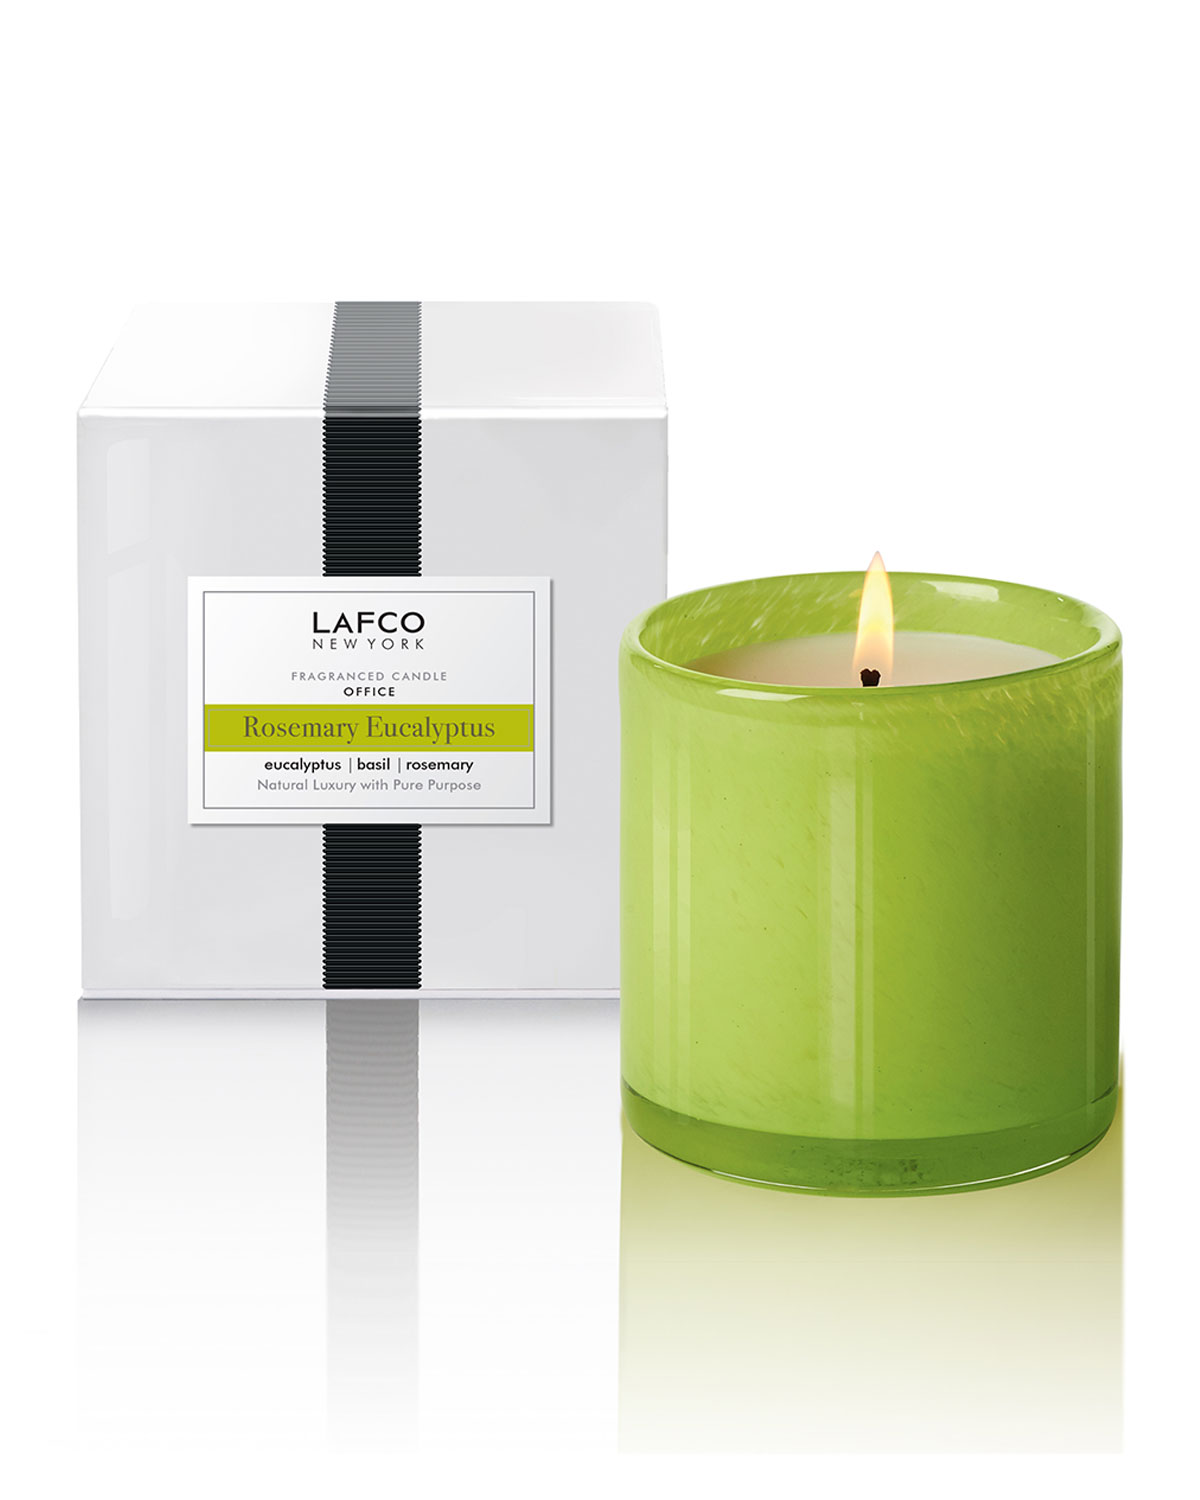 Lafco Rosemary Eucalyptus Signature Candle – Office